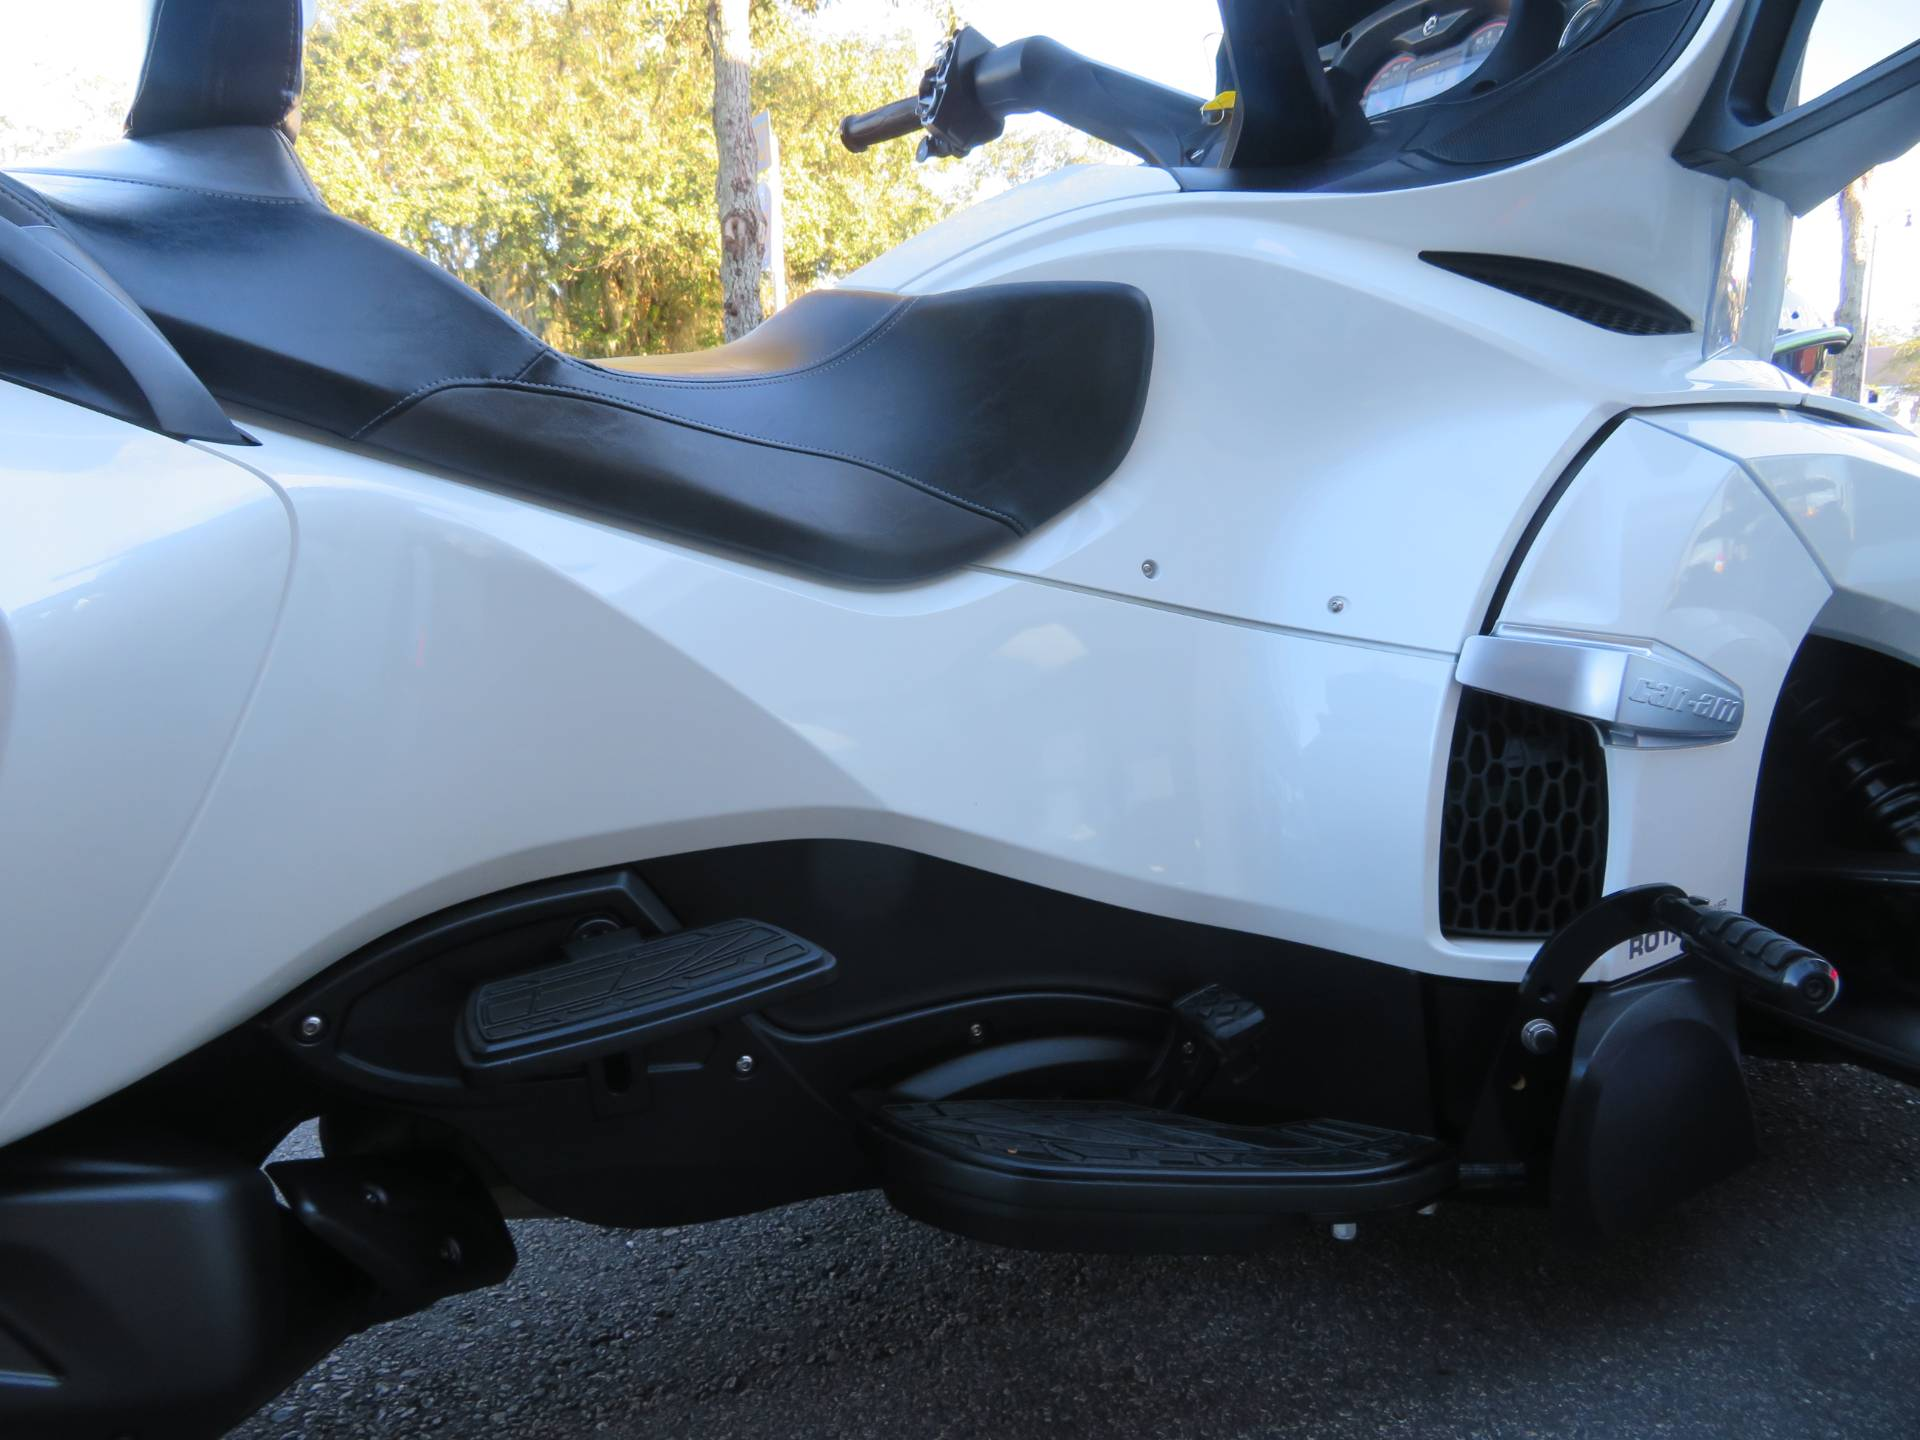 2016 Can-Am Spyder RT-S SE6 in Sanford, Florida - Photo 12